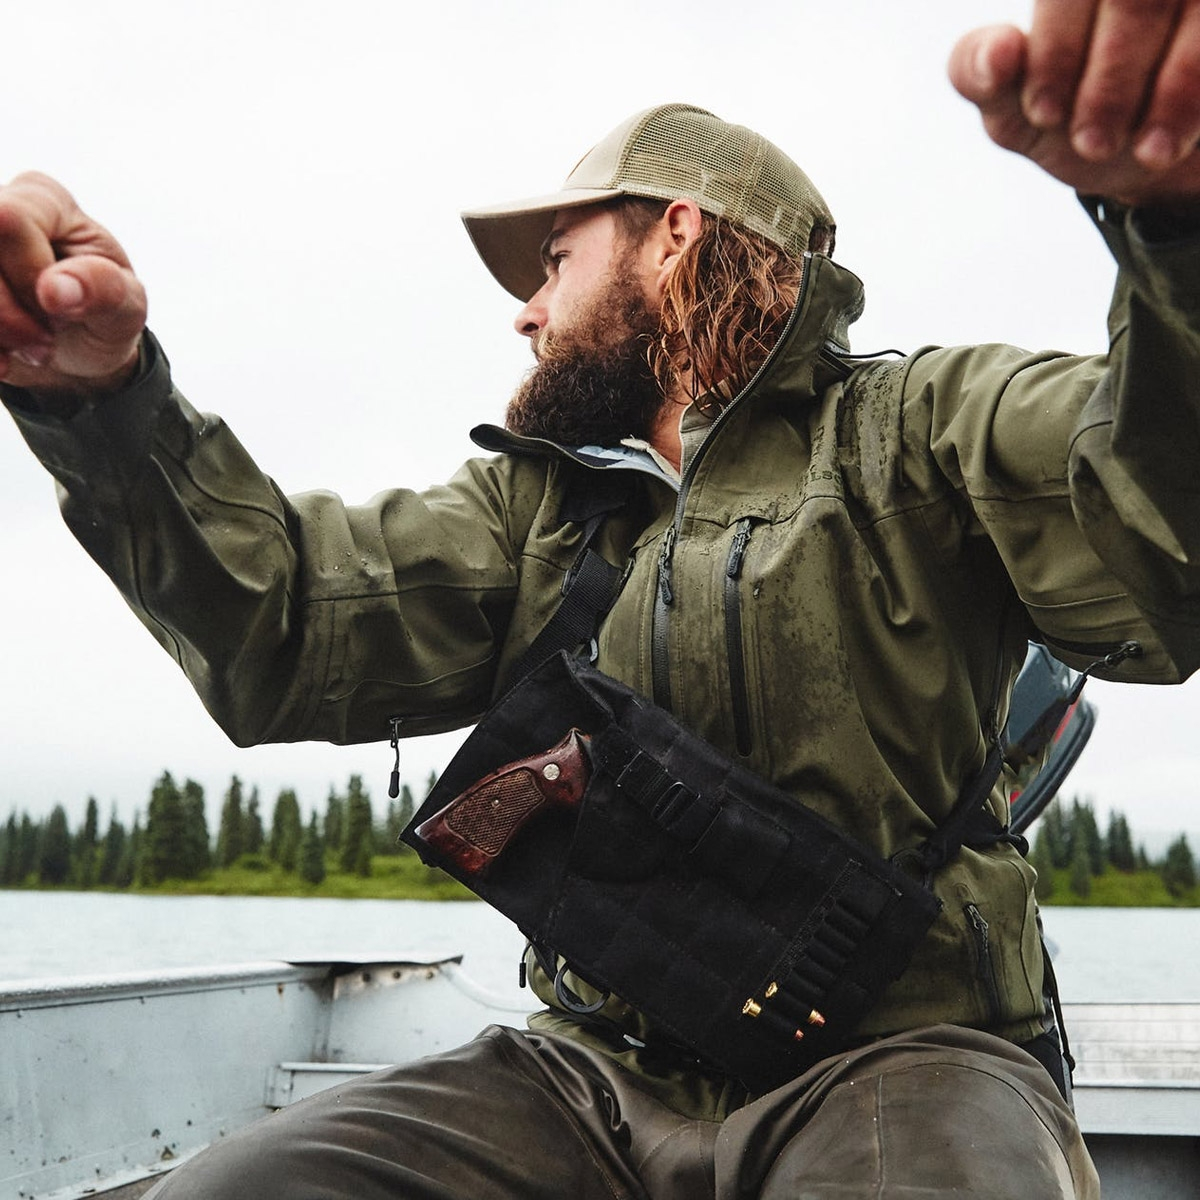 Filson Neoshell Reliance Jacket Raven, waterproof and highly breathable jacket